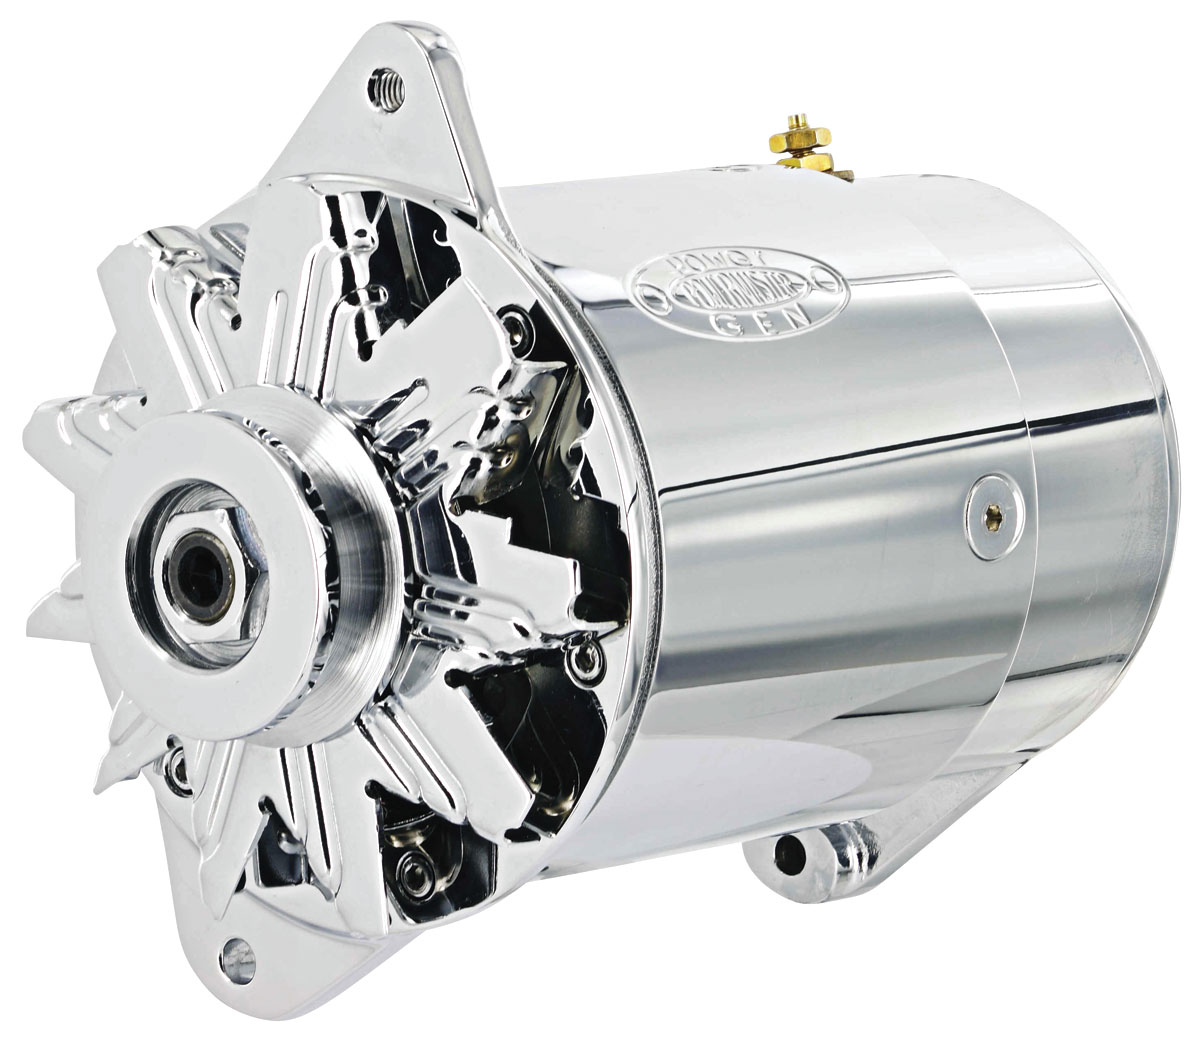 Alternator, PowerGen, 1954-62 GM Car, Chrome, Short Housing, Standard